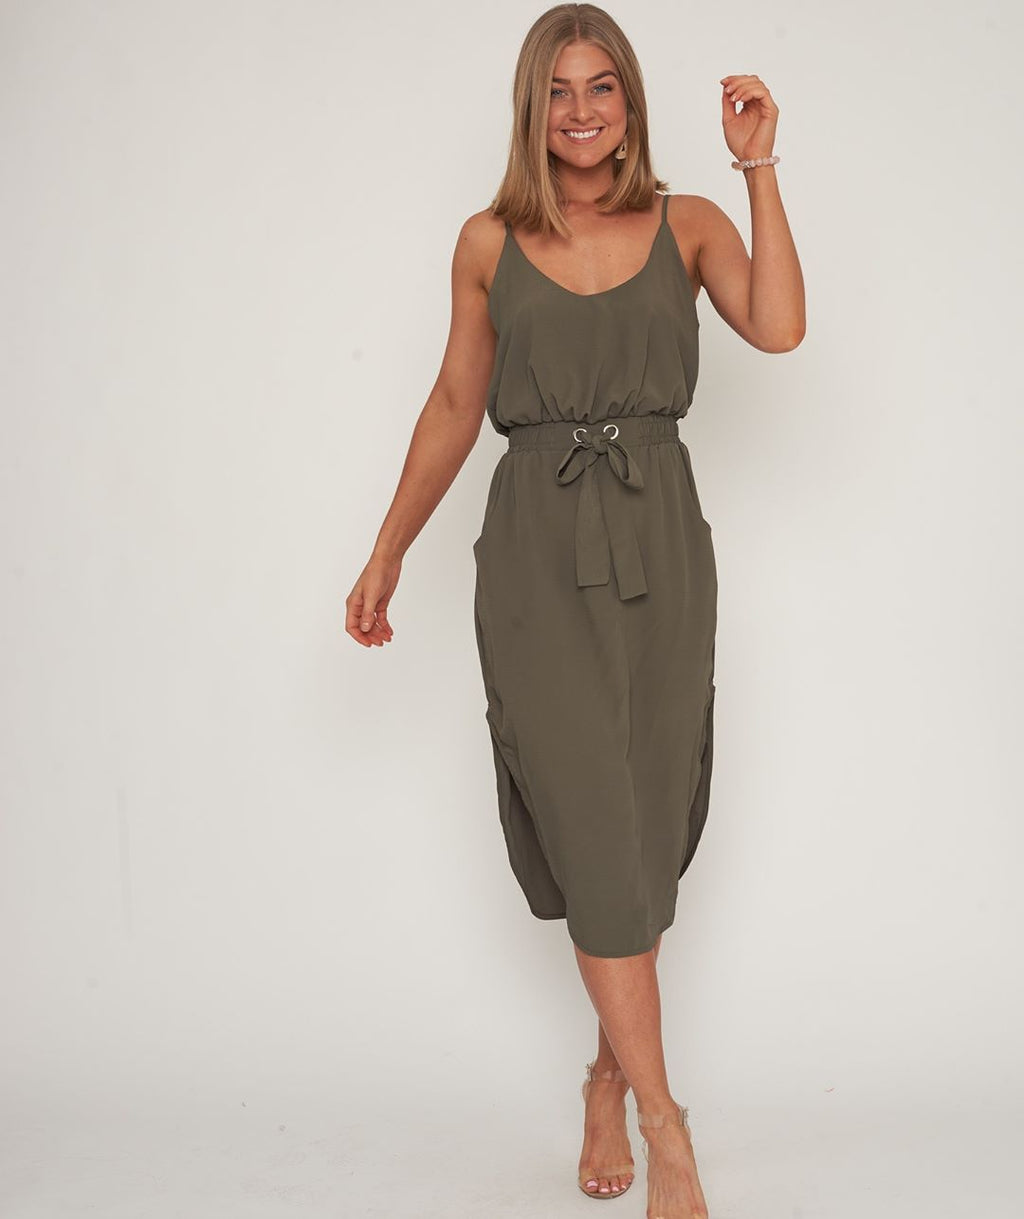 Ebby & I - Summer Dress in Khaki